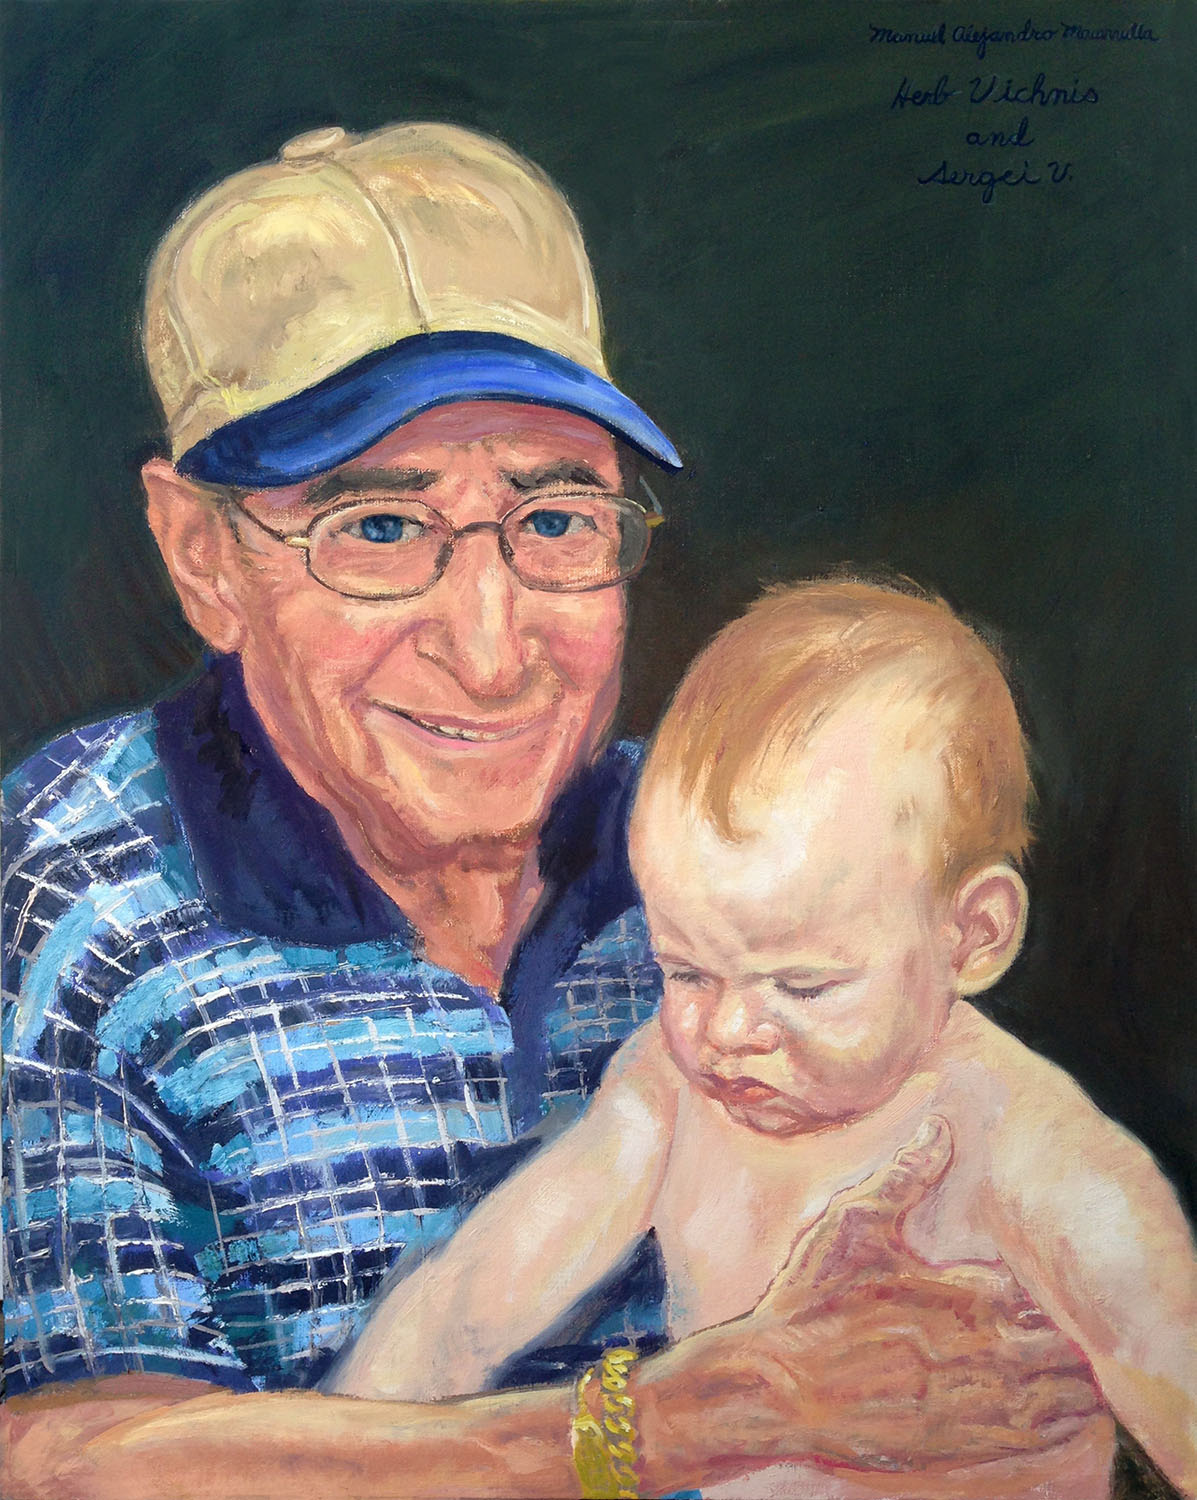 """Herb Vichnis and Sergei V., 2017 Oil on canvas, 30"""" X 24"""" Private collection"""